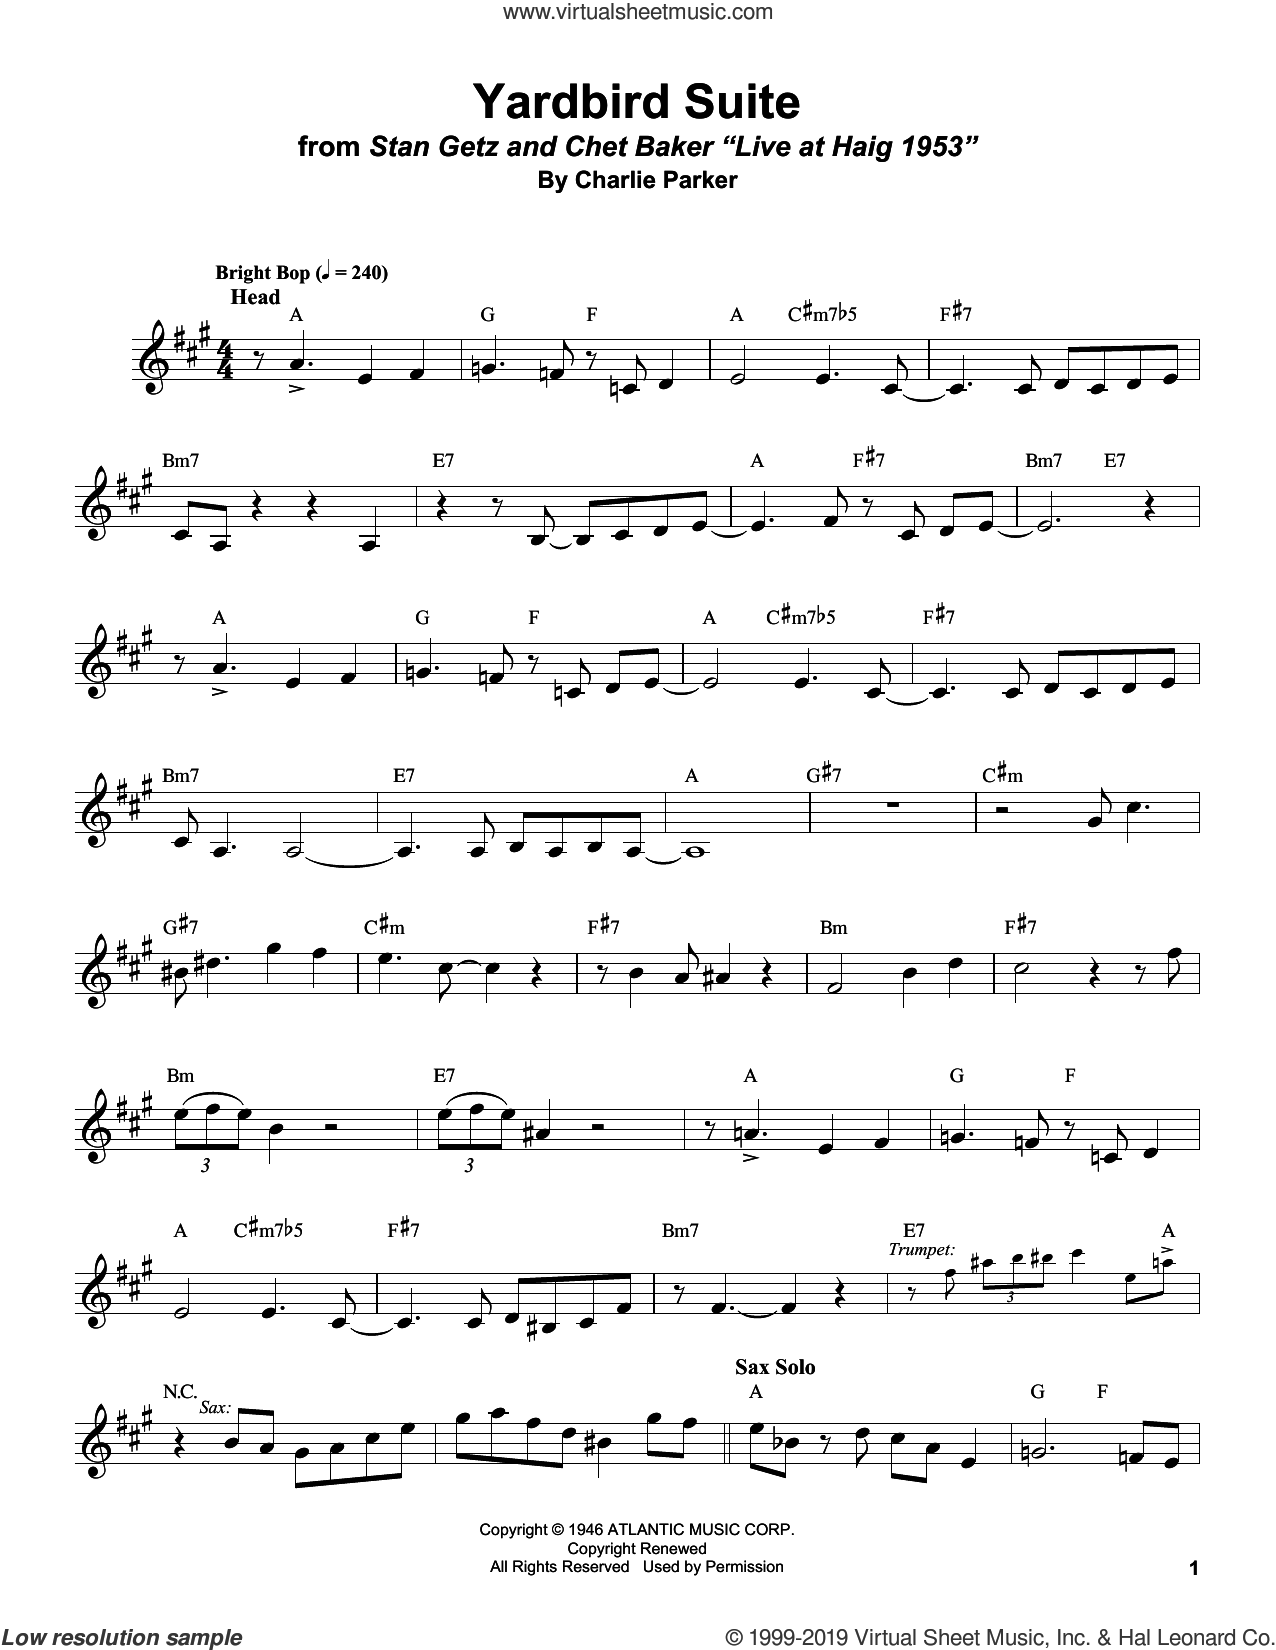 Yardbird Suite sheet music for alto saxophone (transcription) by Stan Getz and Charlie Parker, intermediate skill level